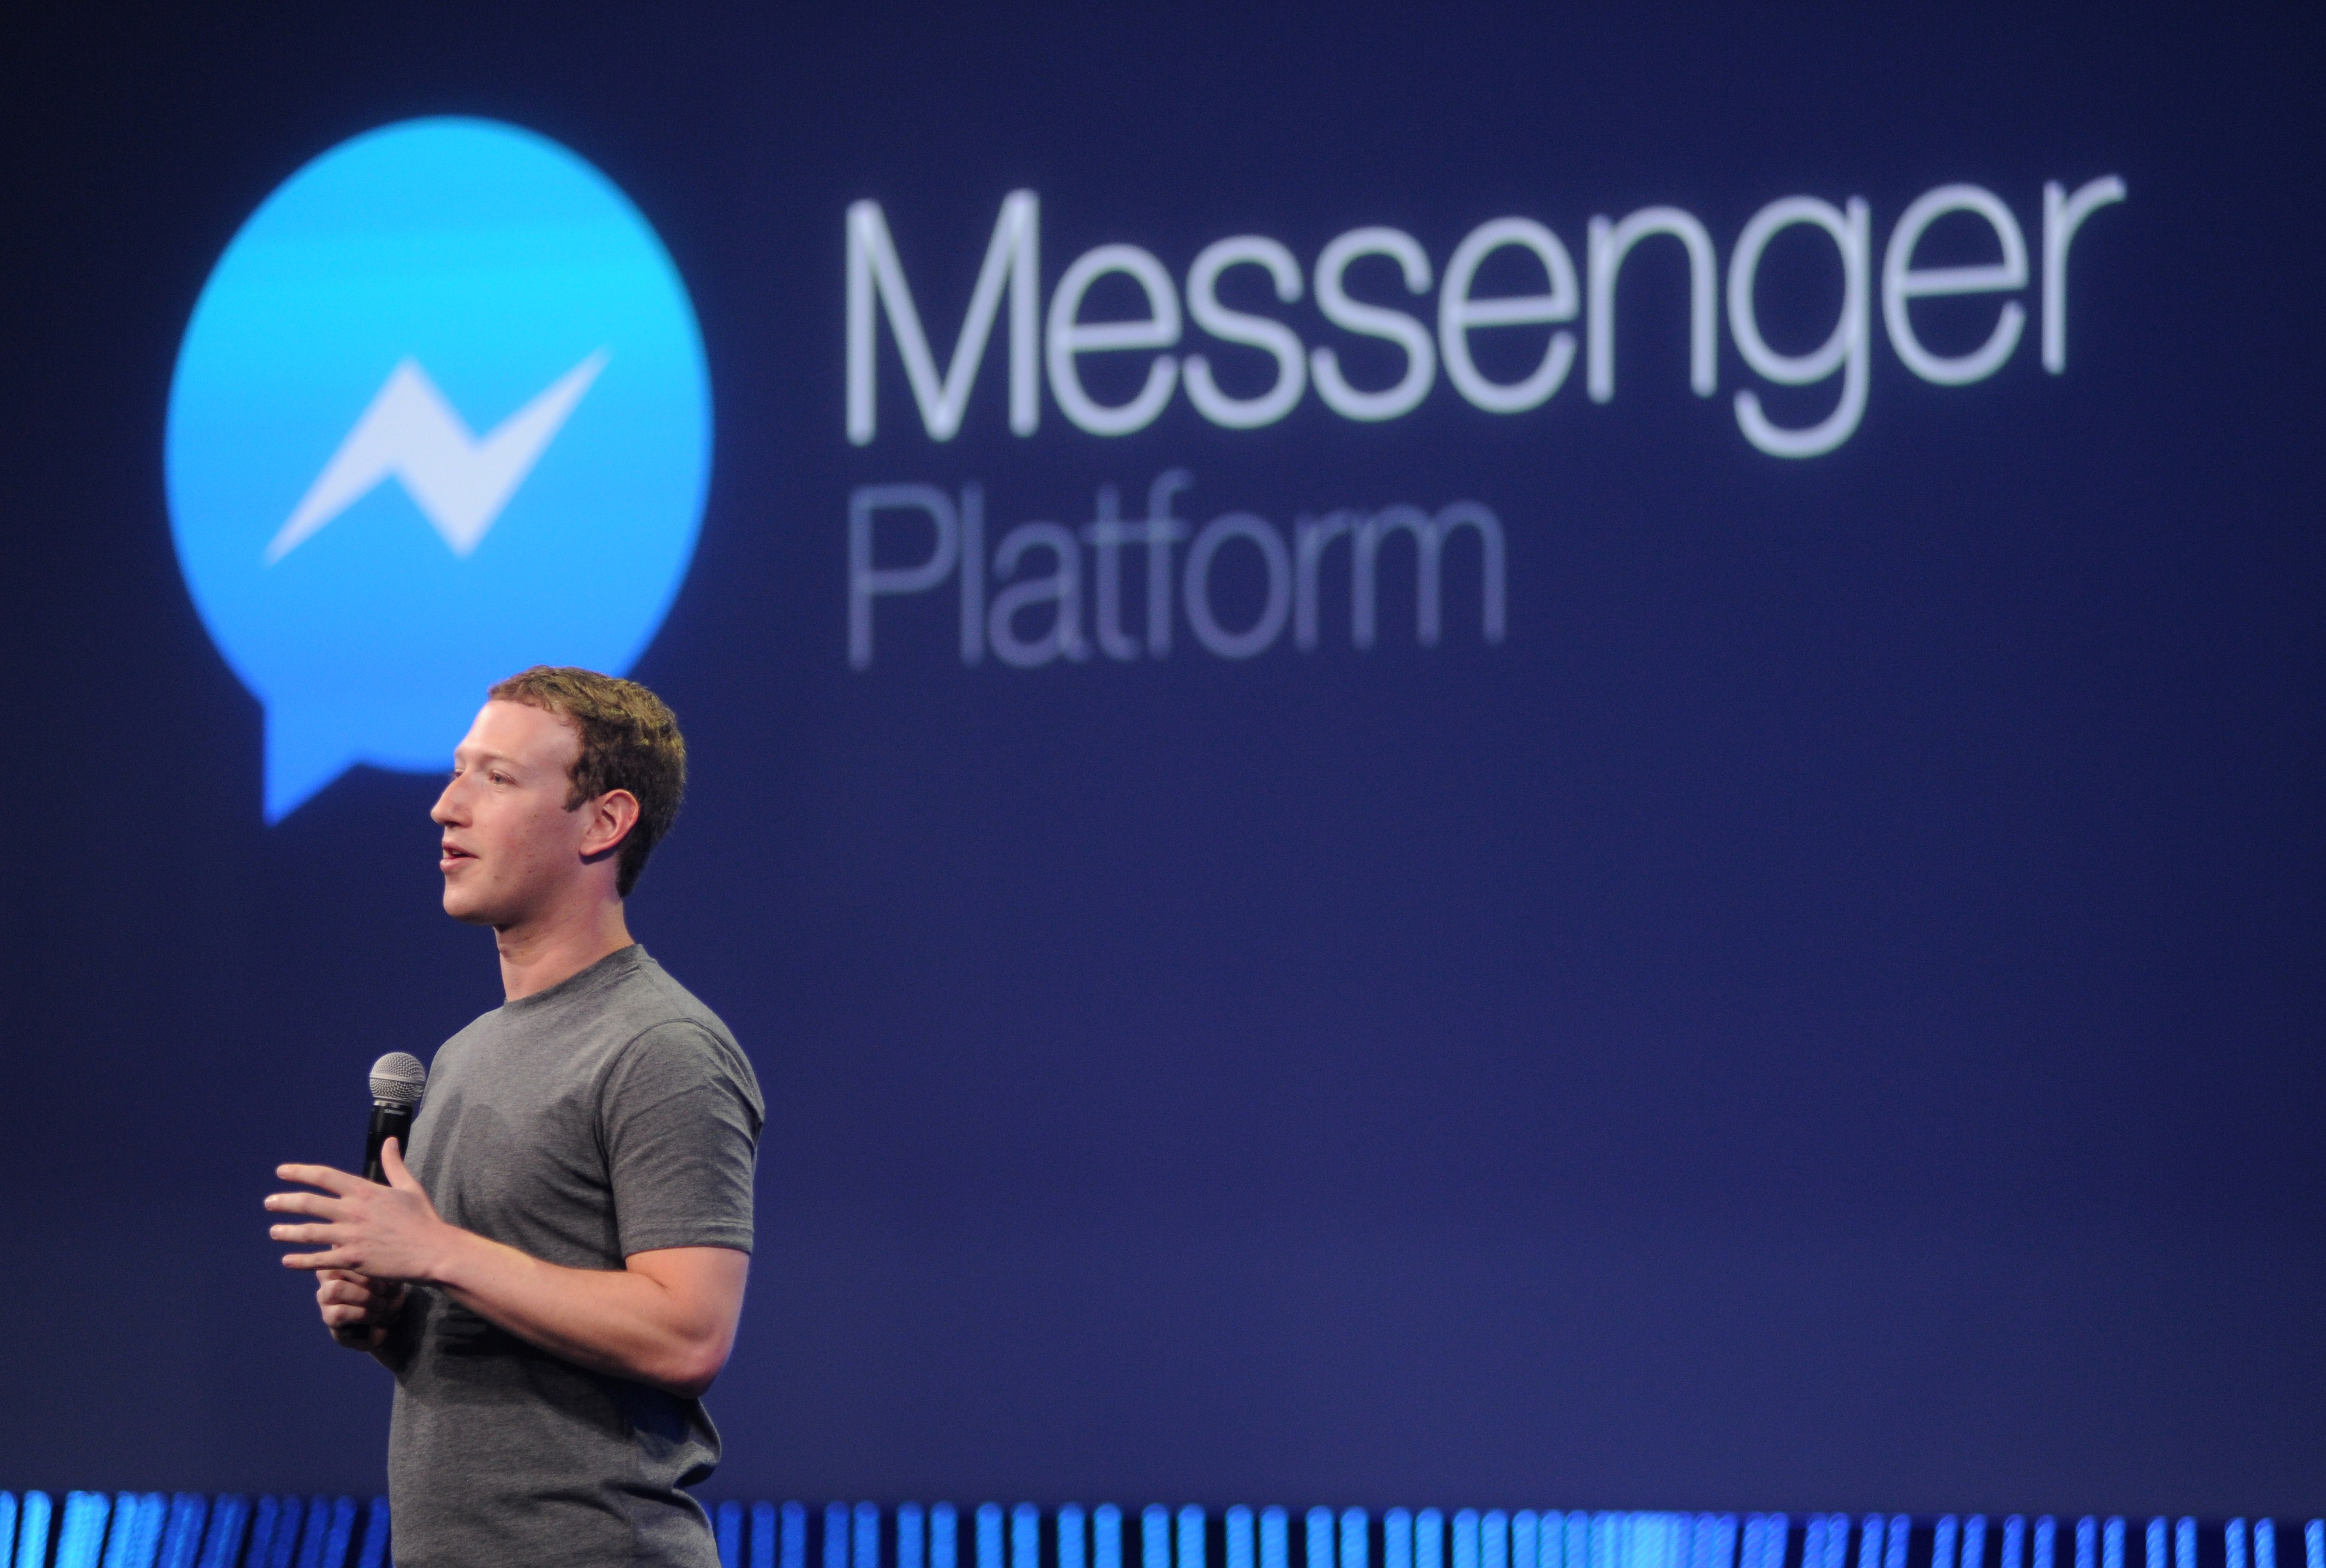 Facebook CEO Mark Zuckerberg introduces a new messenger platform at the F8 summit in San Francisco, California, on March 25, 2015.